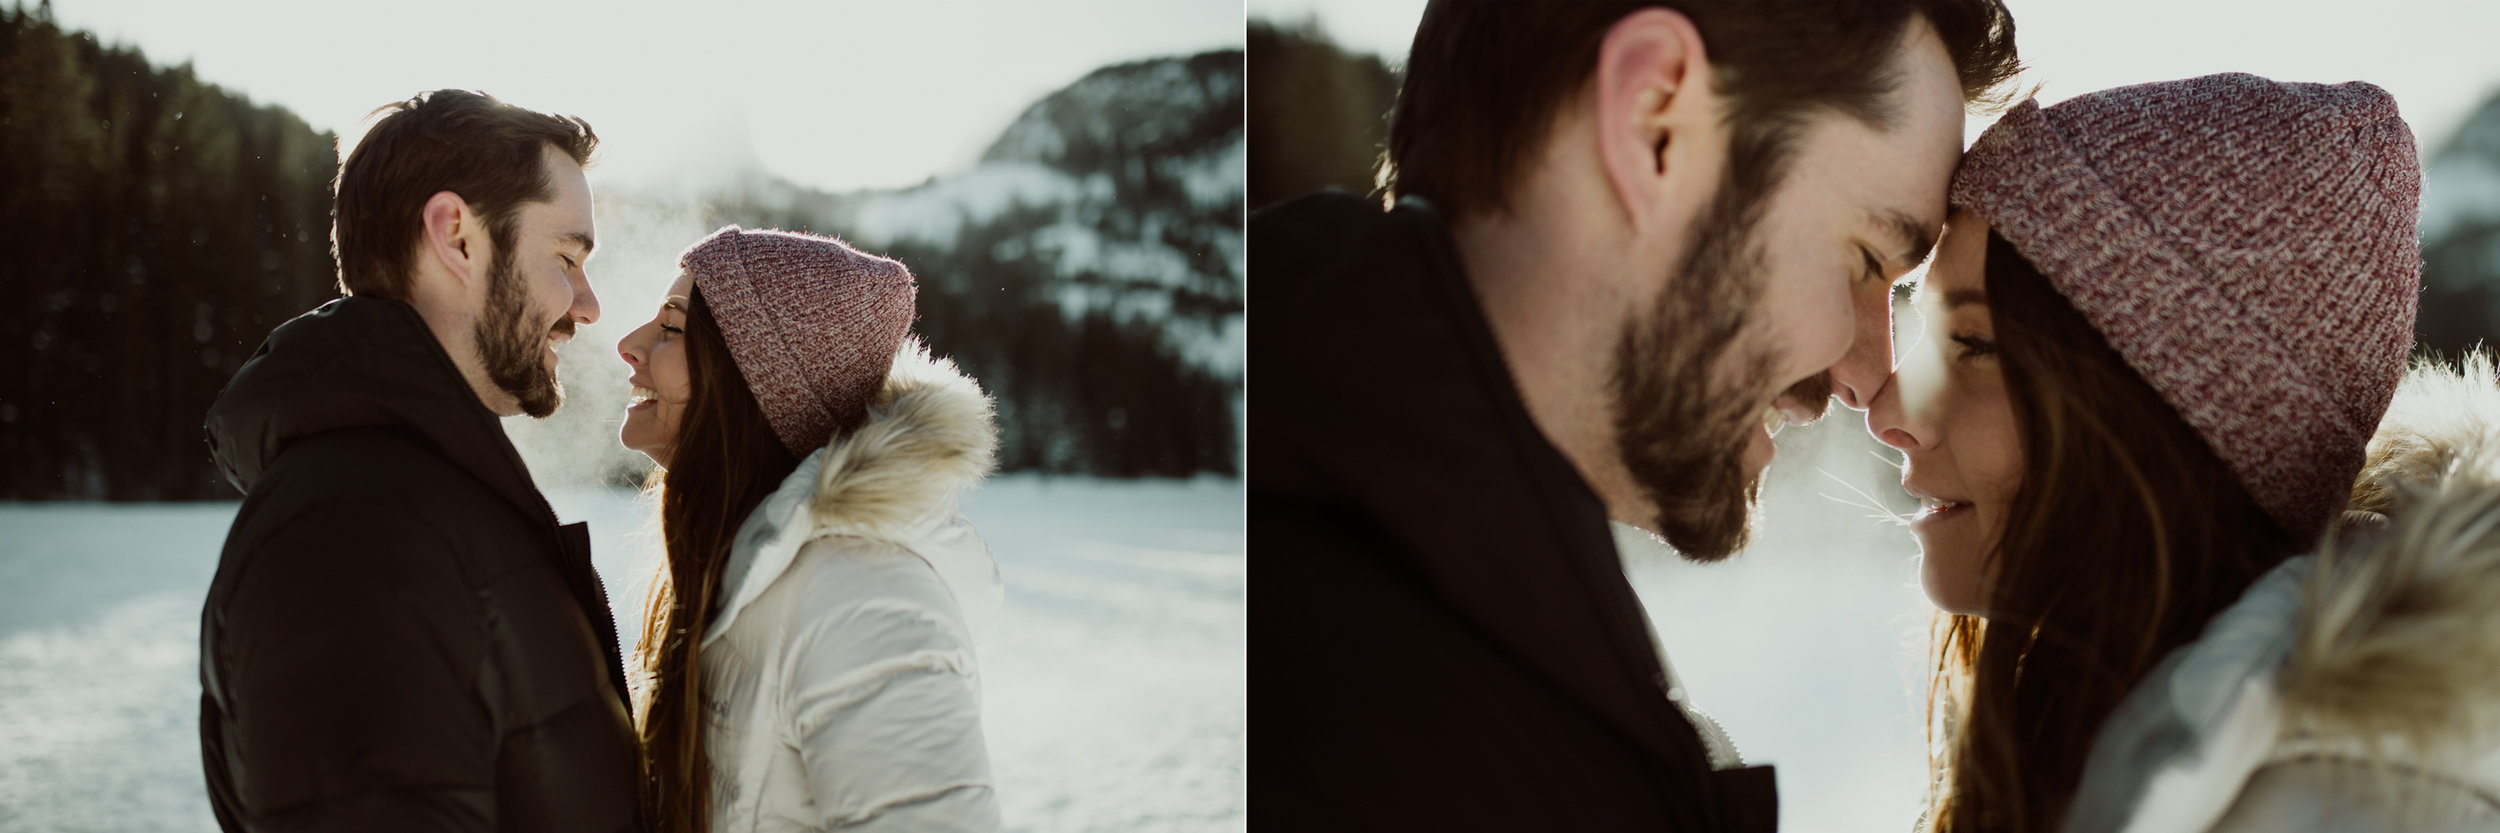 winter-rocky-mountain-national-park-engagements_PS1.jpg